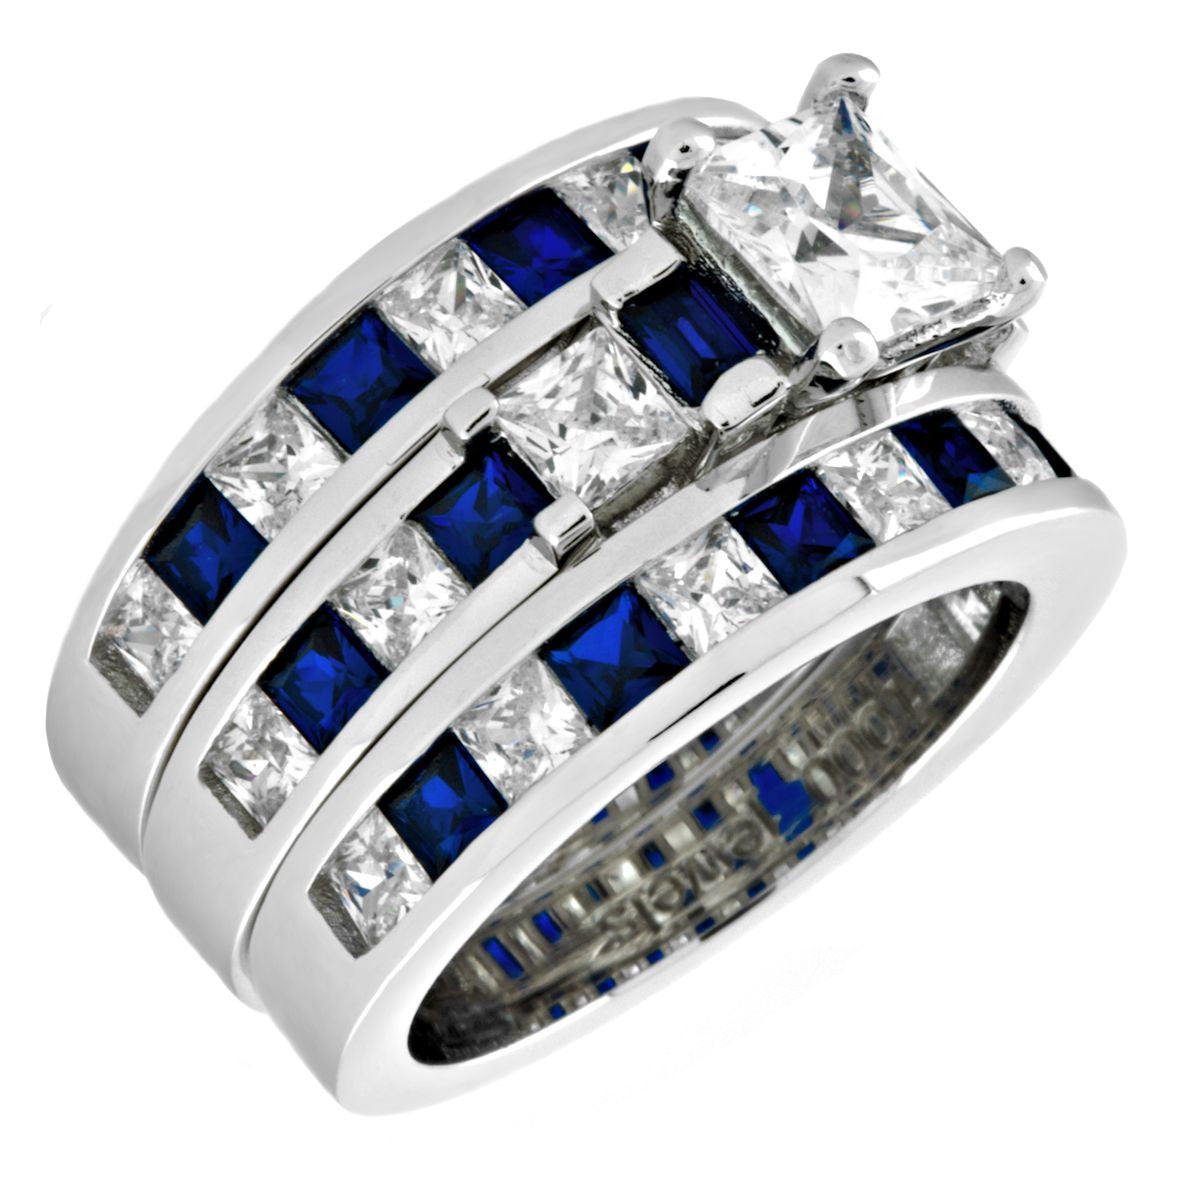 wedding unique silver leaf engagement diamond sapphire design ring sterling set white products